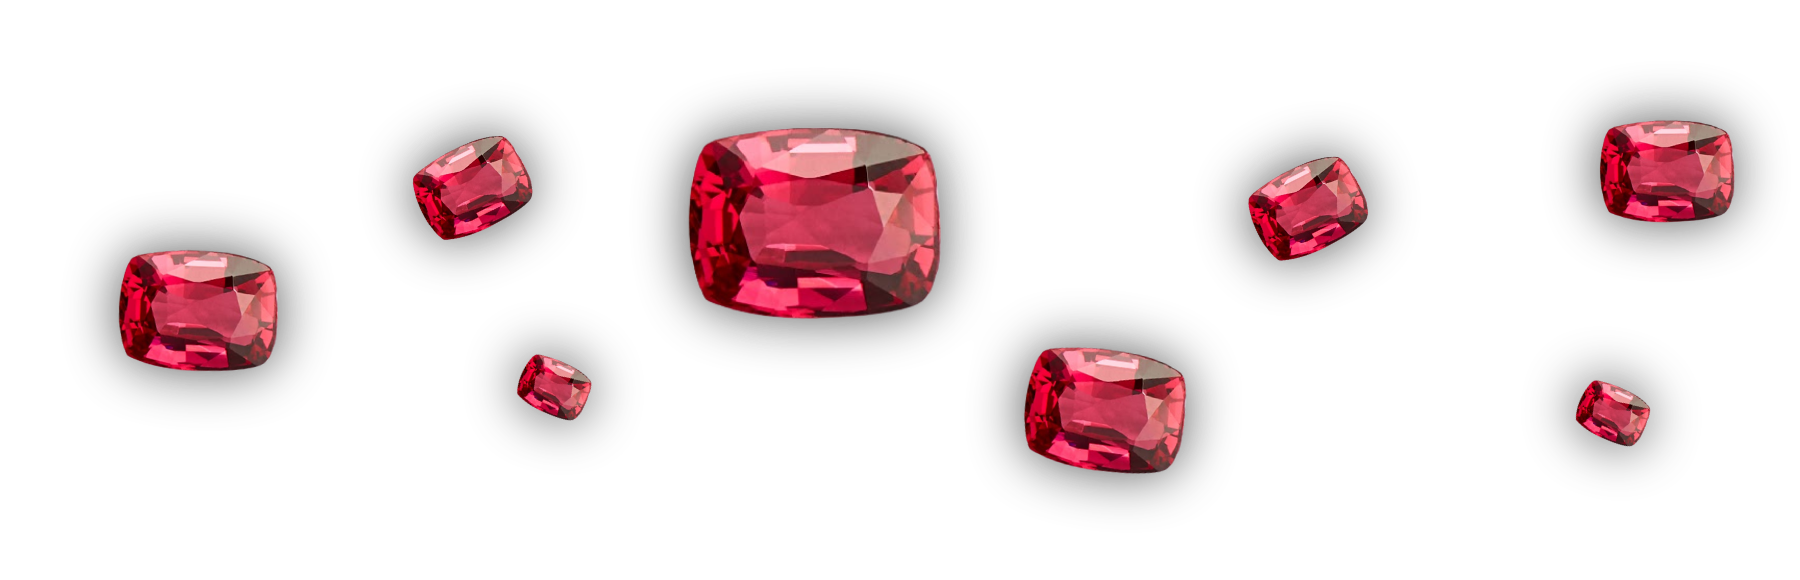 red spinel images